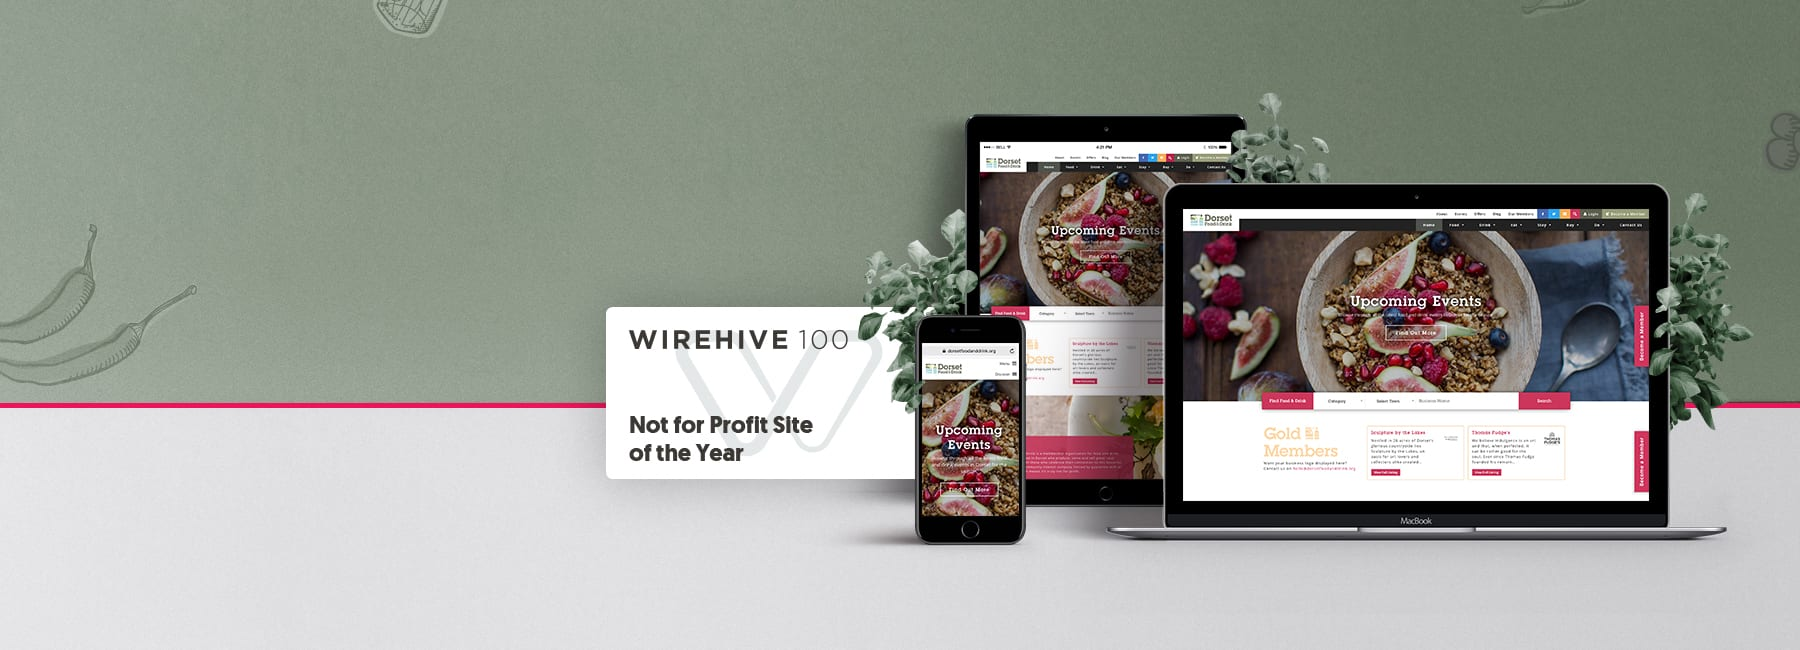 Digital Storm Win at the Wirehive 100 Awards 2018